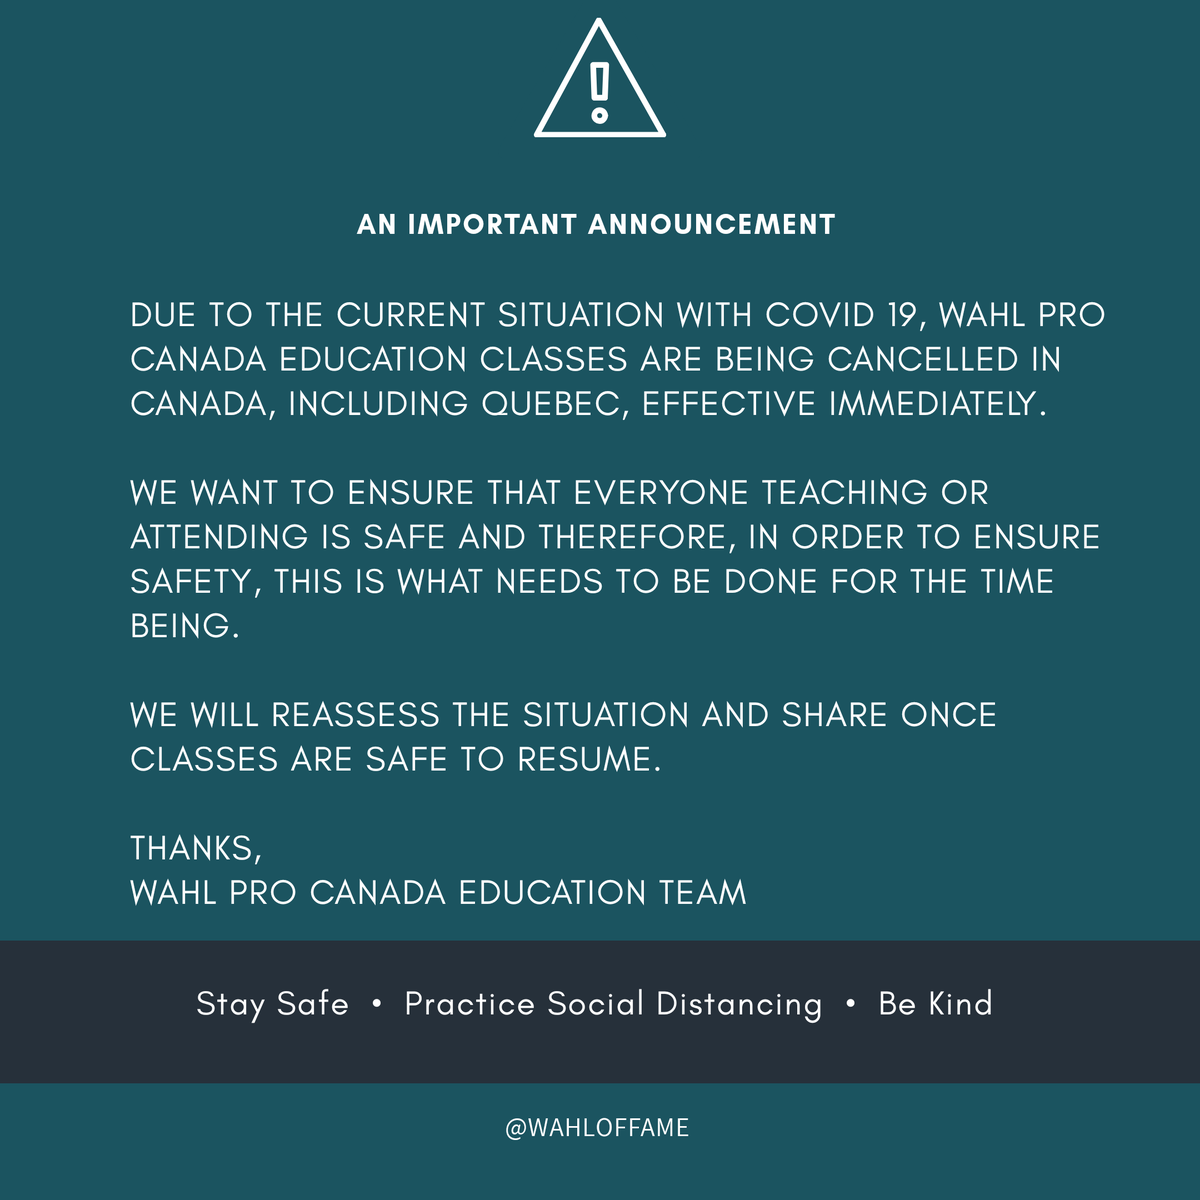 We want to ensure everyone is safe and we have made the decision to cancel all Wahl Pro Canada Education classes across Canada, including Quebec. Please STAY SAFE!   #staysafe #canadianbarbers #wahlprocanada #wahloffam #canadianbarbers #wahlprocanada #wahloffame #WahlCanadapic.twitter.com/eqwlzGTaYN